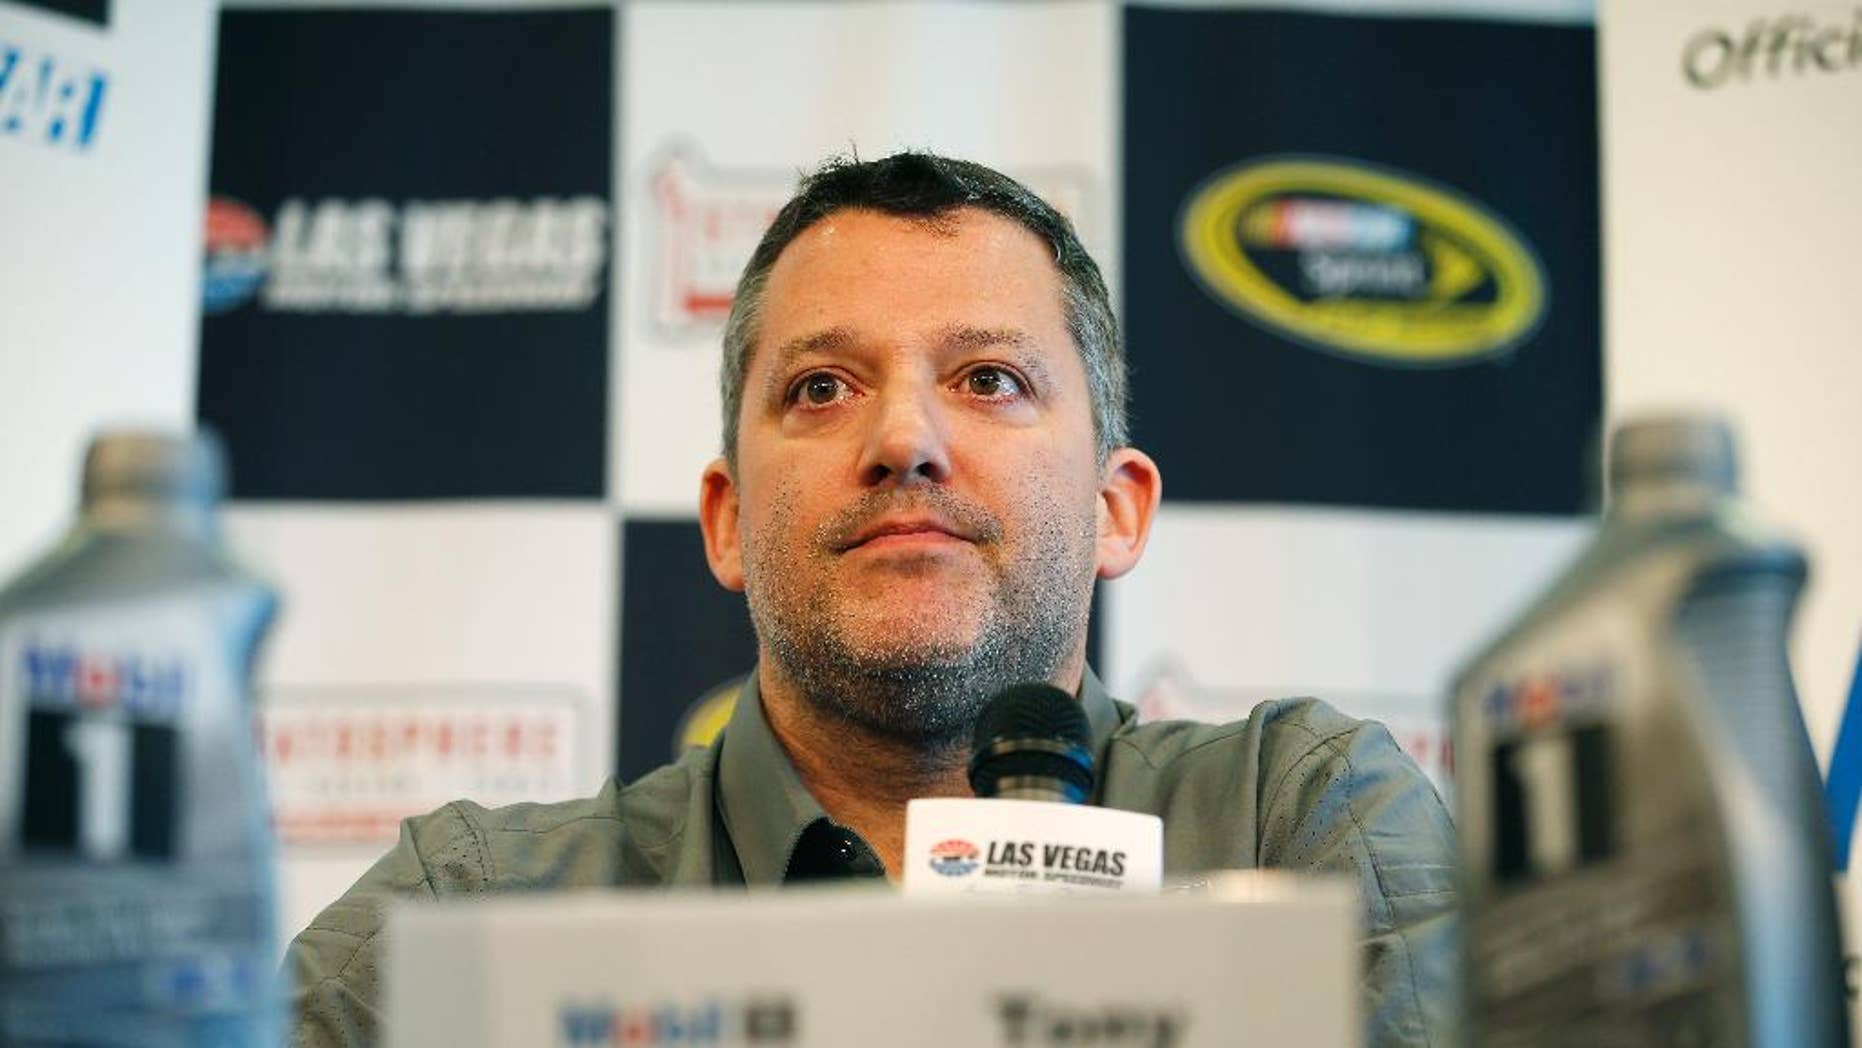 FILE - In this March 4, 2016, file photo, NASCAR driver Tony Stewart speaks during a news conference in Las Vegas. Stewart has been cleared to return to racing and will be back in his car Friday, April 22, 2016, at Richmond International Raceway. The three-time NASCAR champion missed the first eight races of the season with a fractured vertebra suffered in a January all-terrain vehicle accident. (AP Photo/John Locher, File)